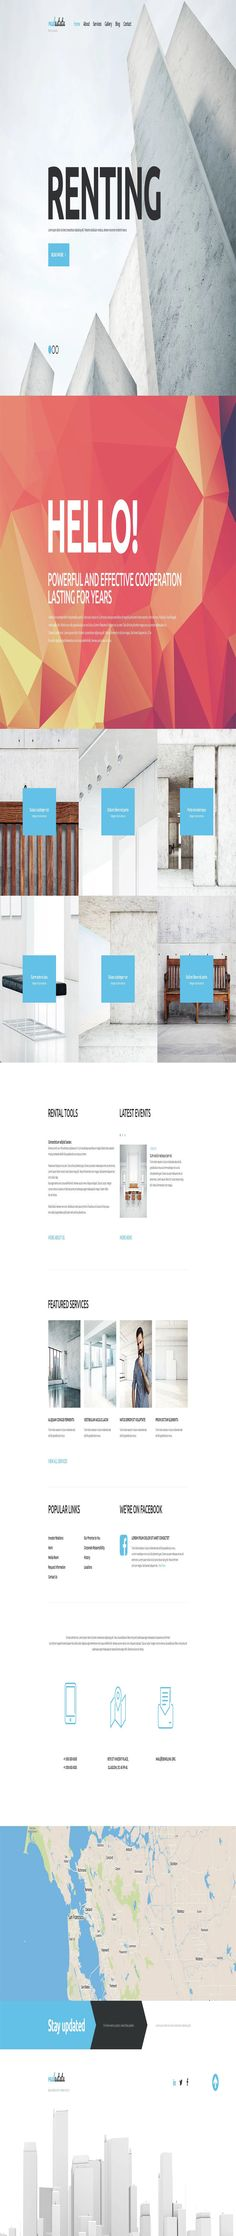 #Real #Estate #Agency #WordPress #Theme.This theme is specially designed for real estate agencies and related services. Thanks to a clean and minimalist layout, it makes your site more informative and allows visitors to focus on the offered content. A fullscreen slider in the header section and a full-width image with parallax effect give the site quite an unusual look and a touch of personality. Thanks to Cherry framework and Bootstrap toolkit, this real estate WP theme can be adjusted to…